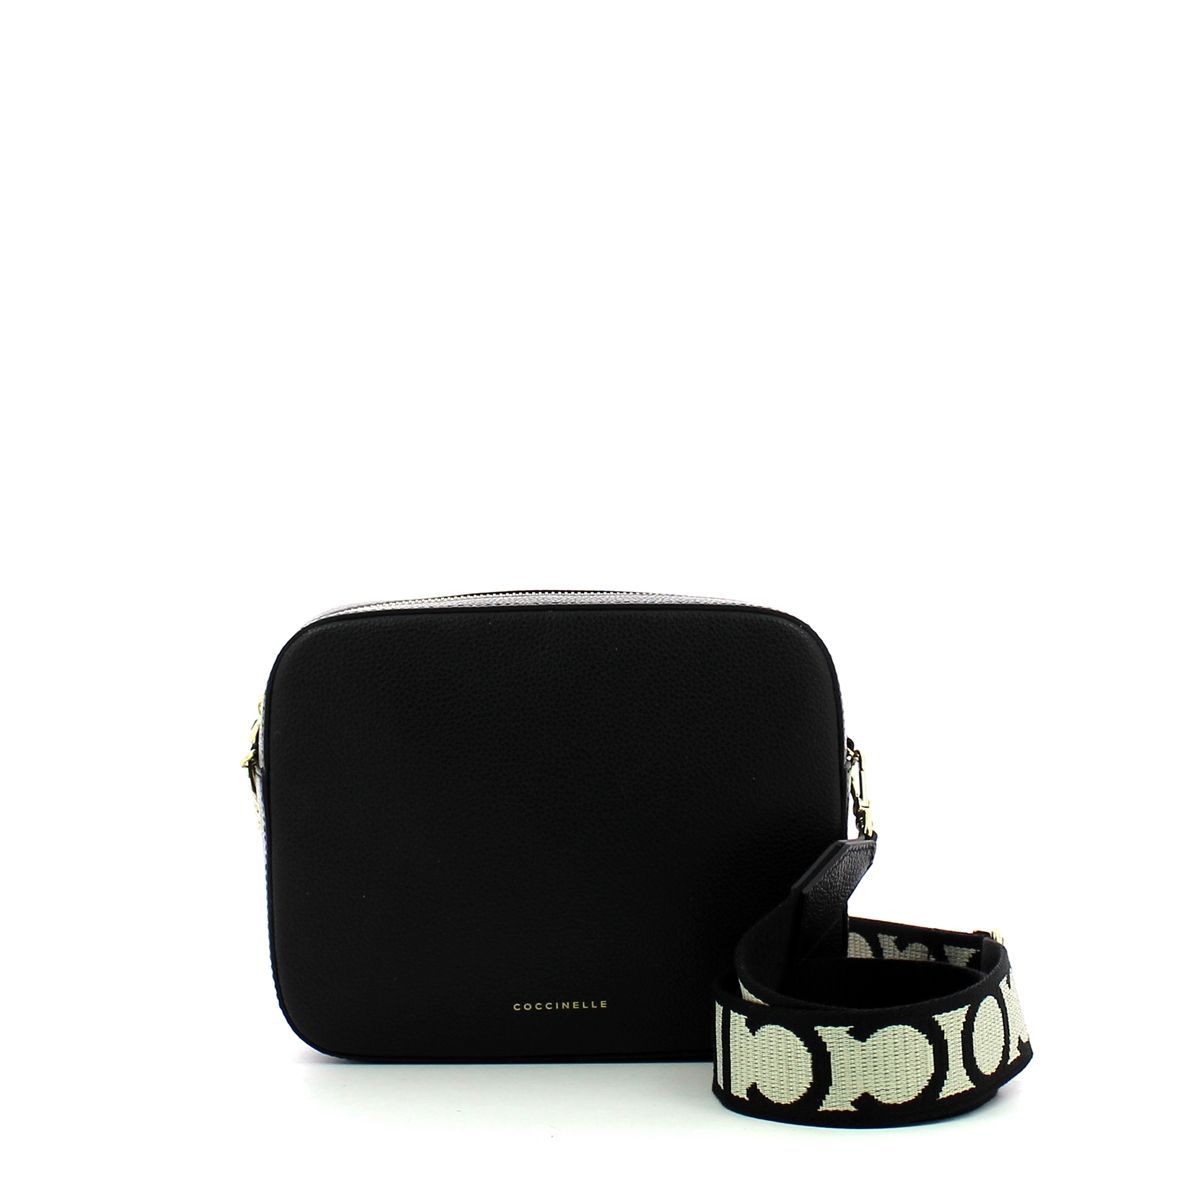 Mini Tebe Crossbody Bag in Leather Coccinelle NOIR